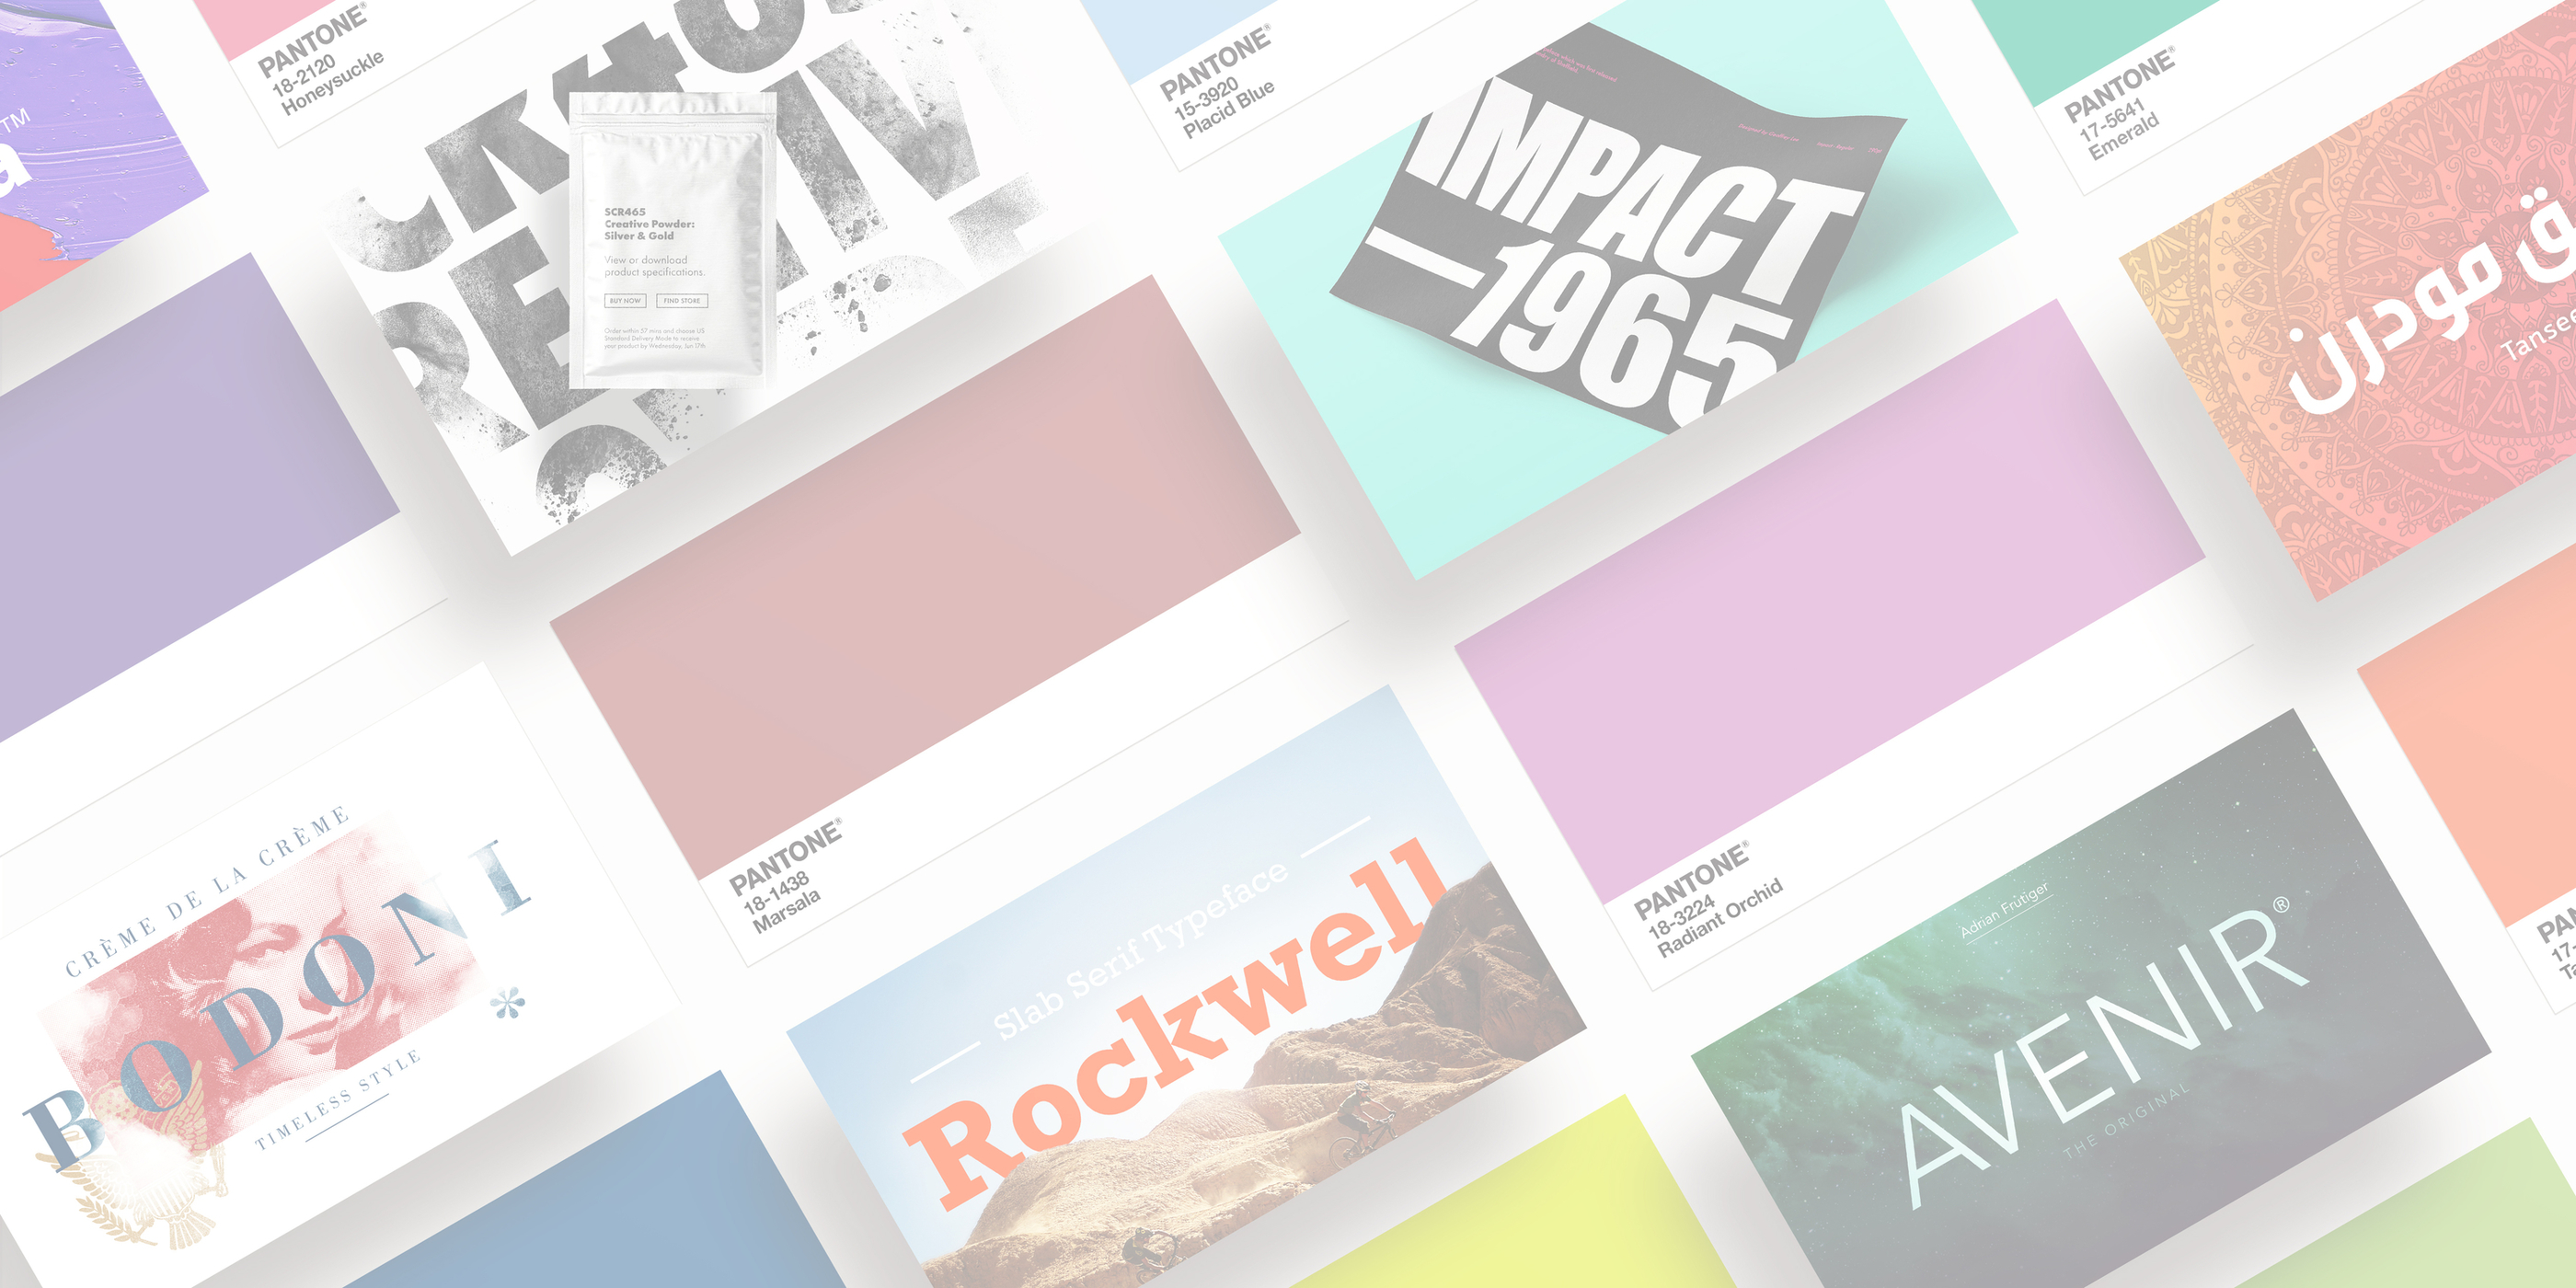 Pantone x Monotype: how colour and font make an iconic brand.